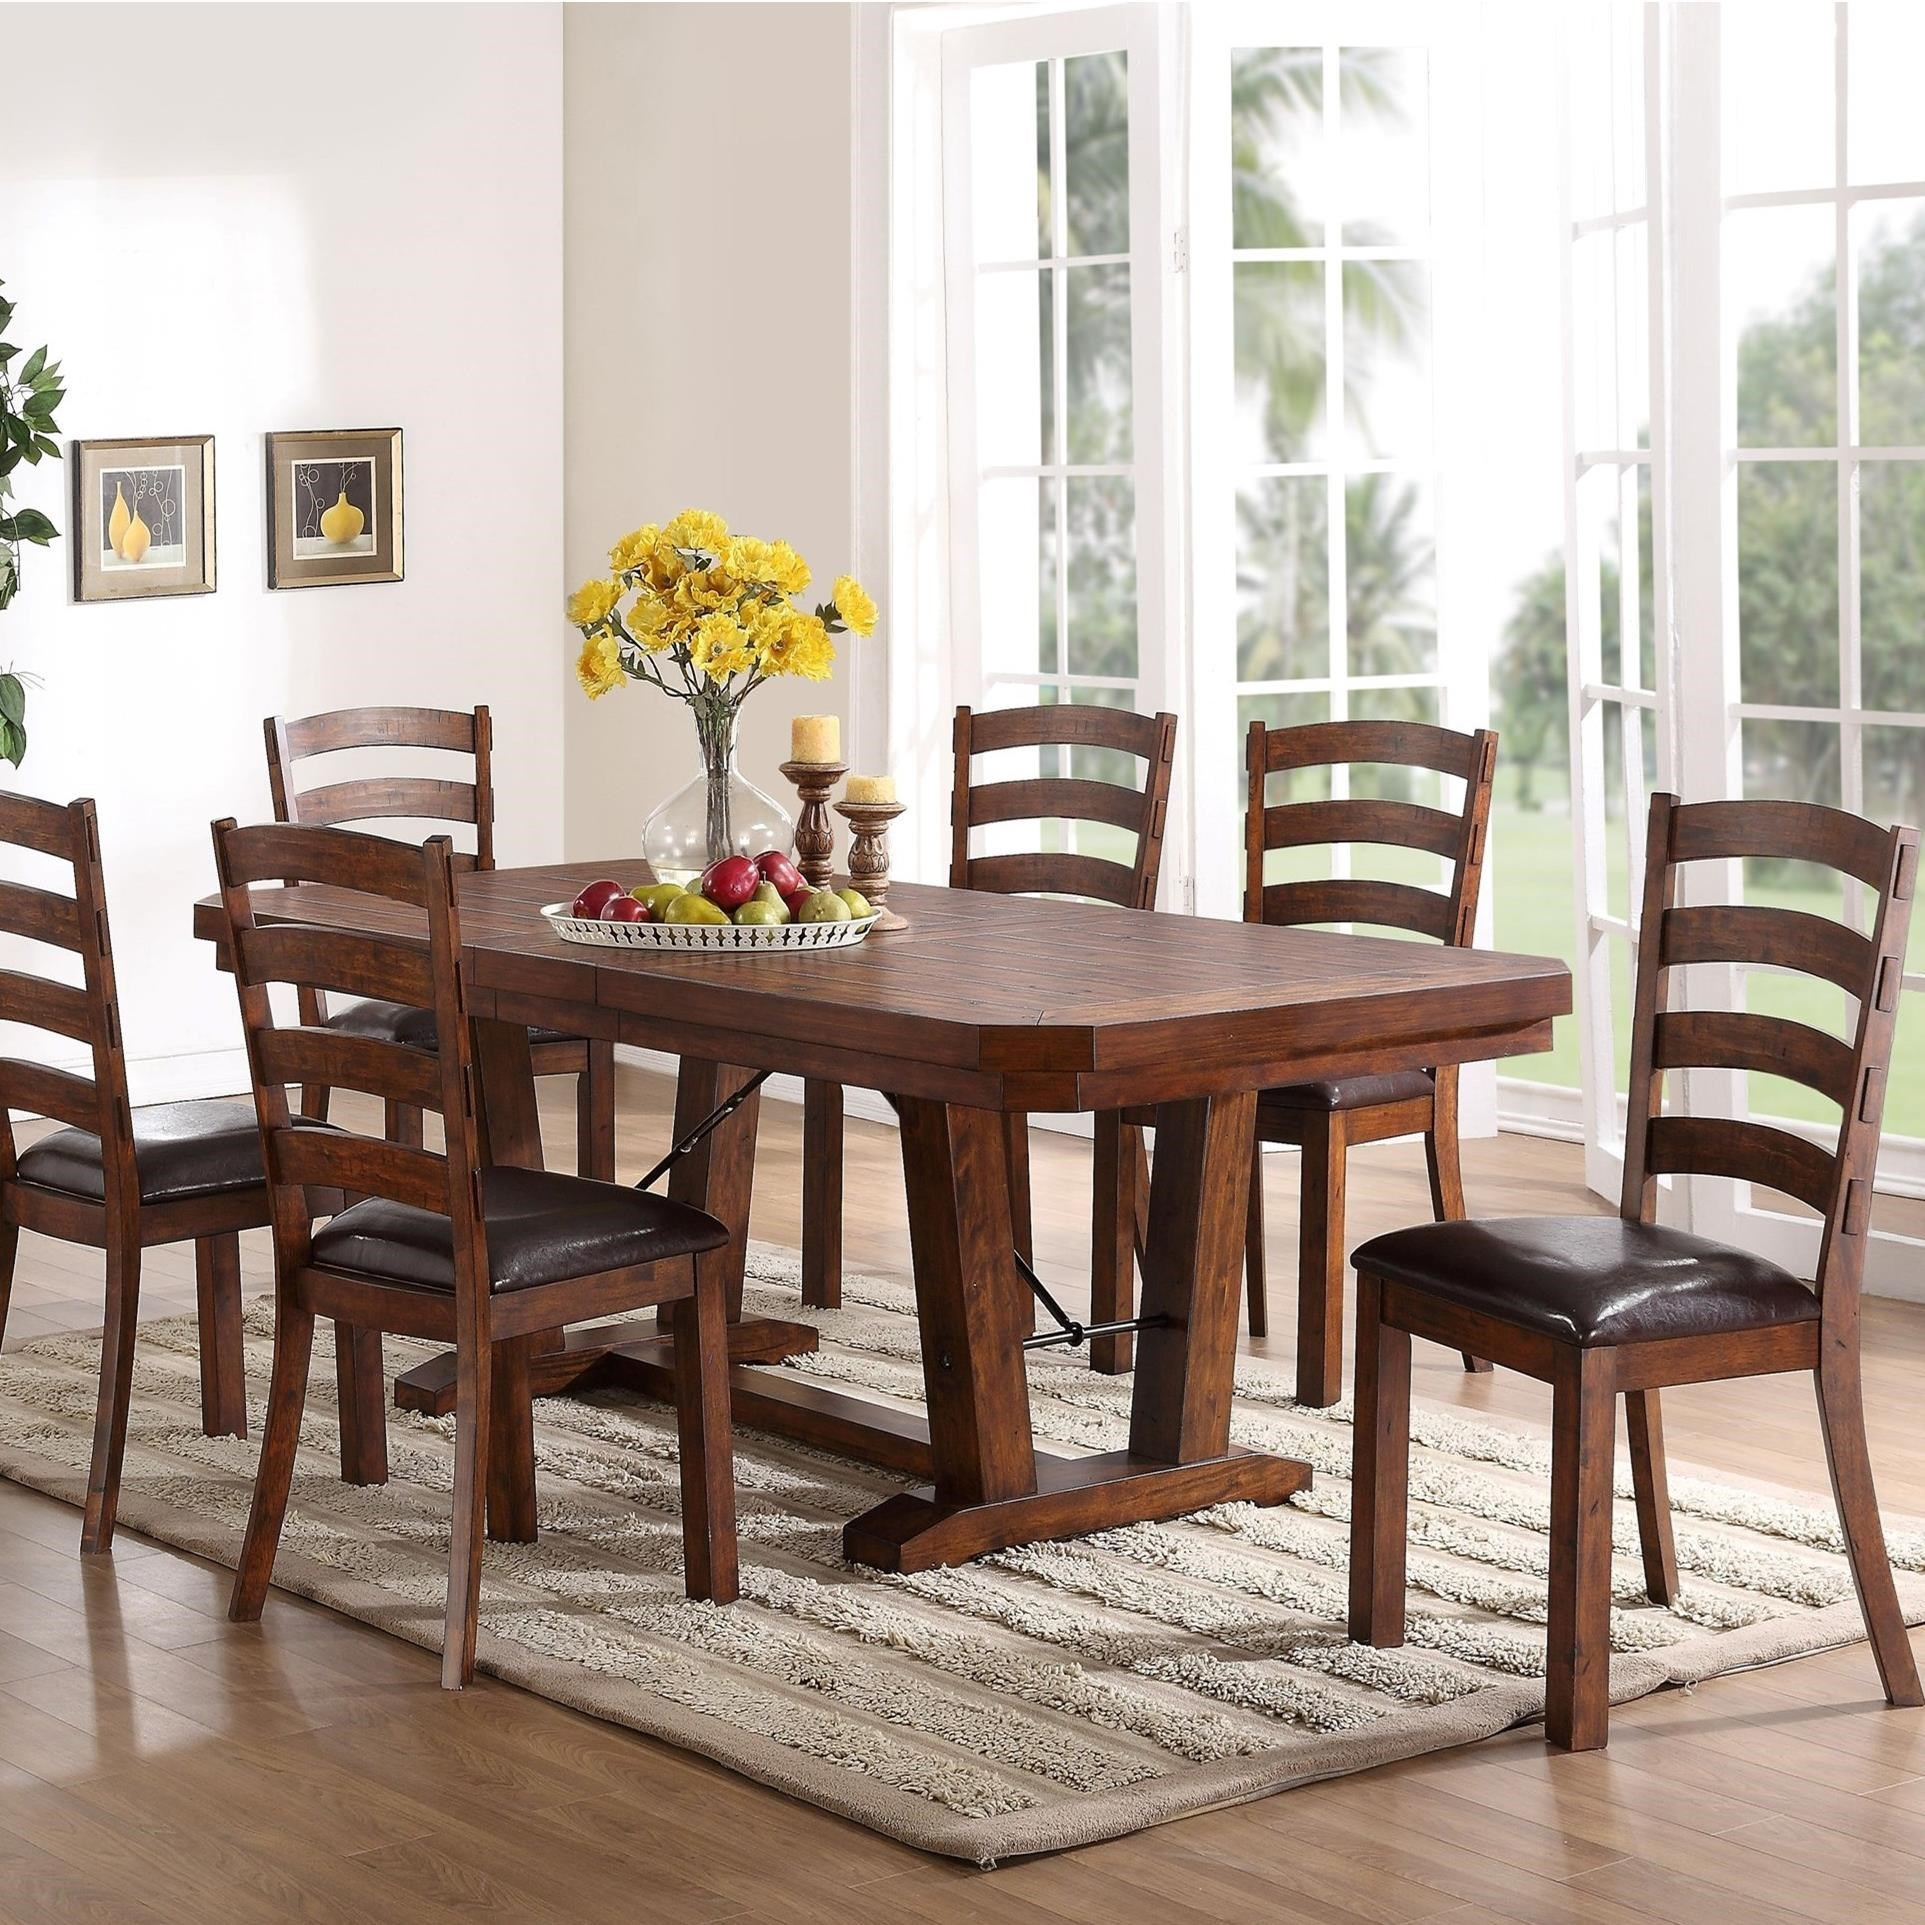 7 piece dining table harvey norman new classic lanesboro piece dining table and ladder back chair set